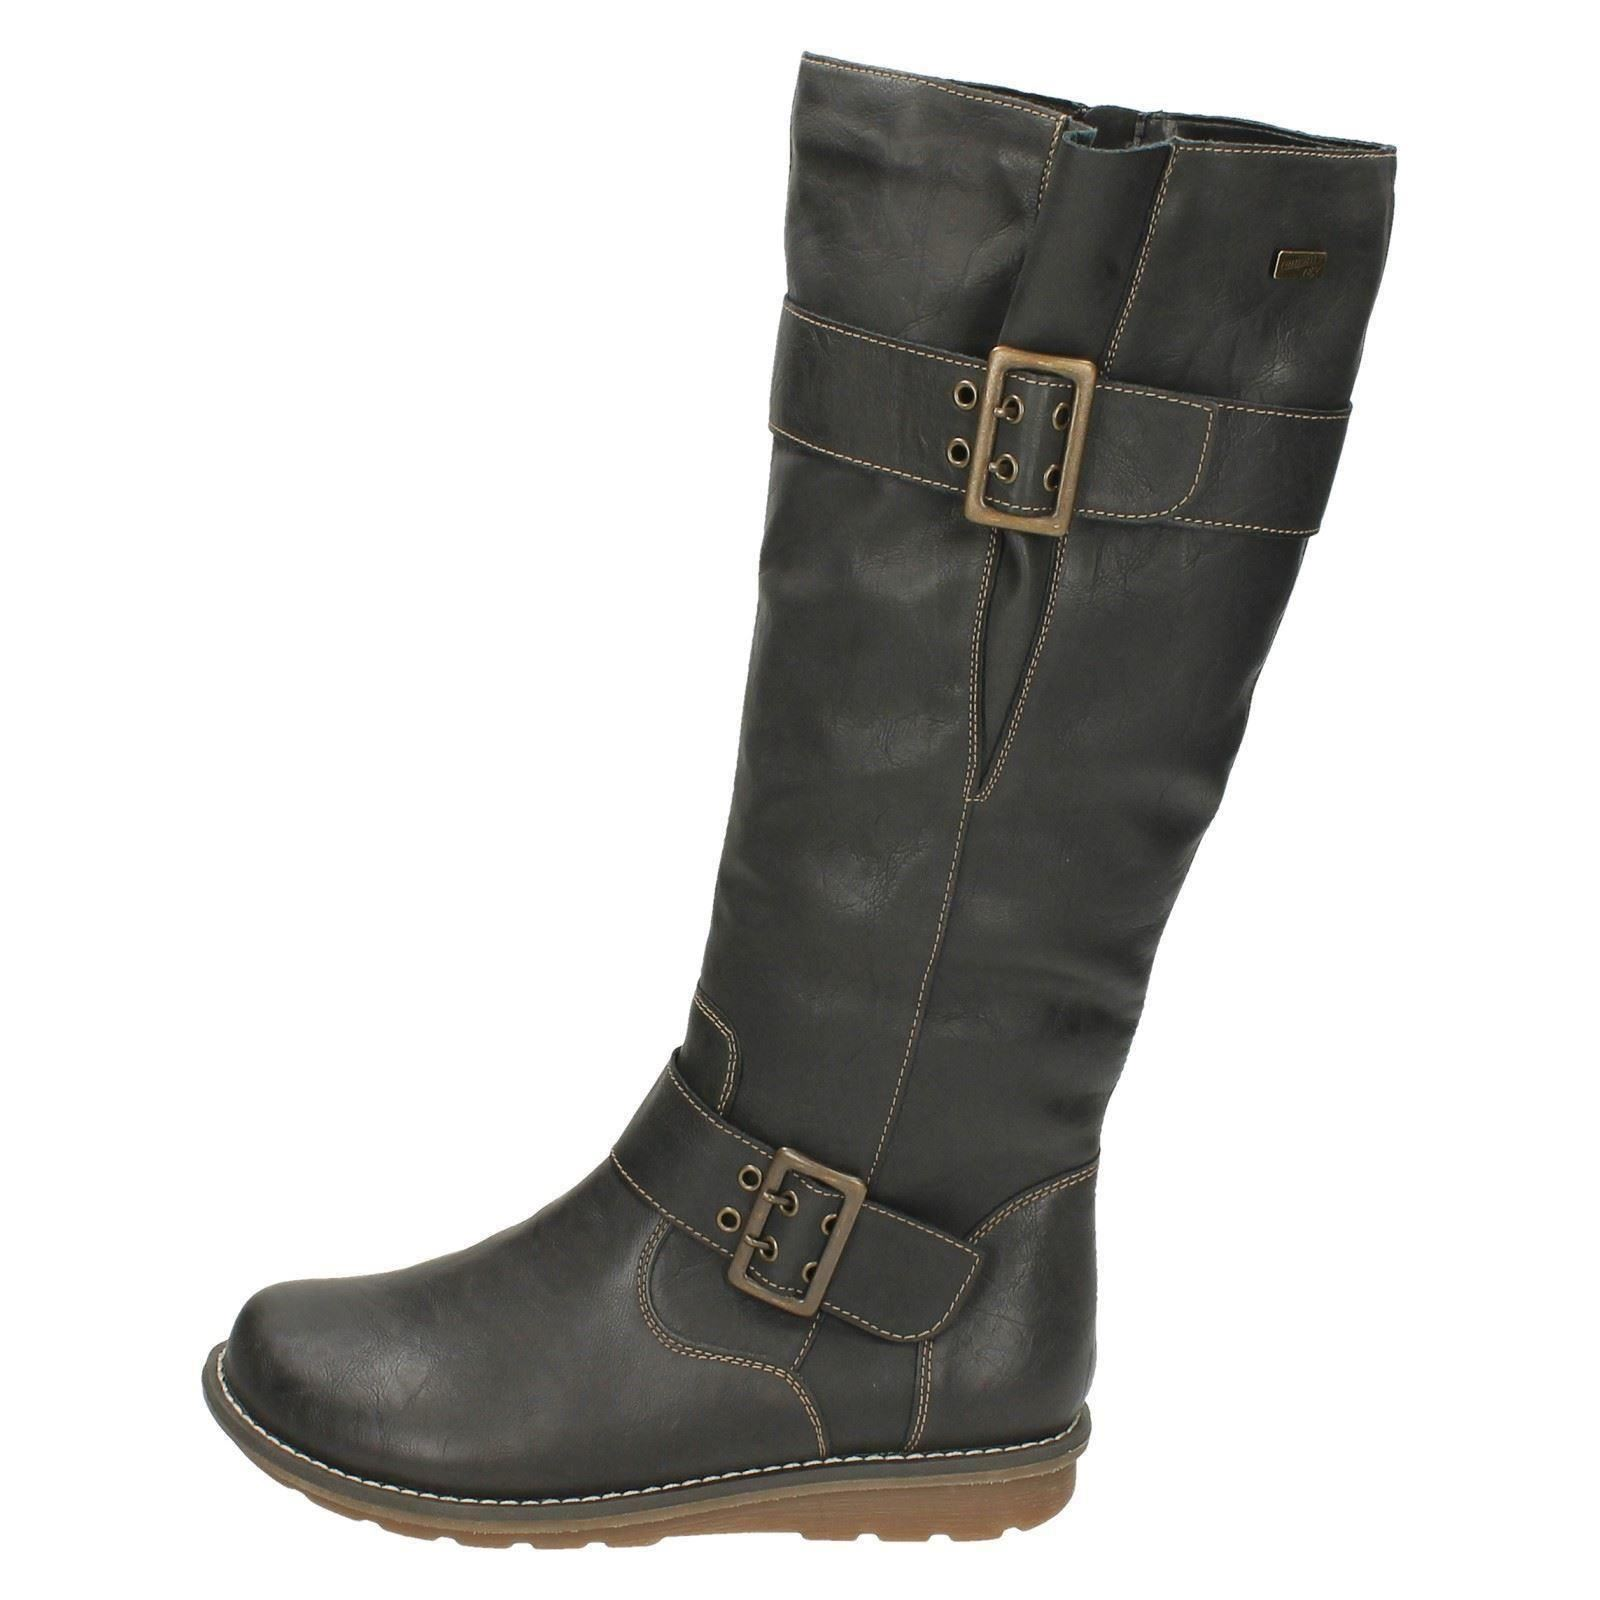 Ladies Remonte Style Long Boots The Style Remonte - R1073 3bab70